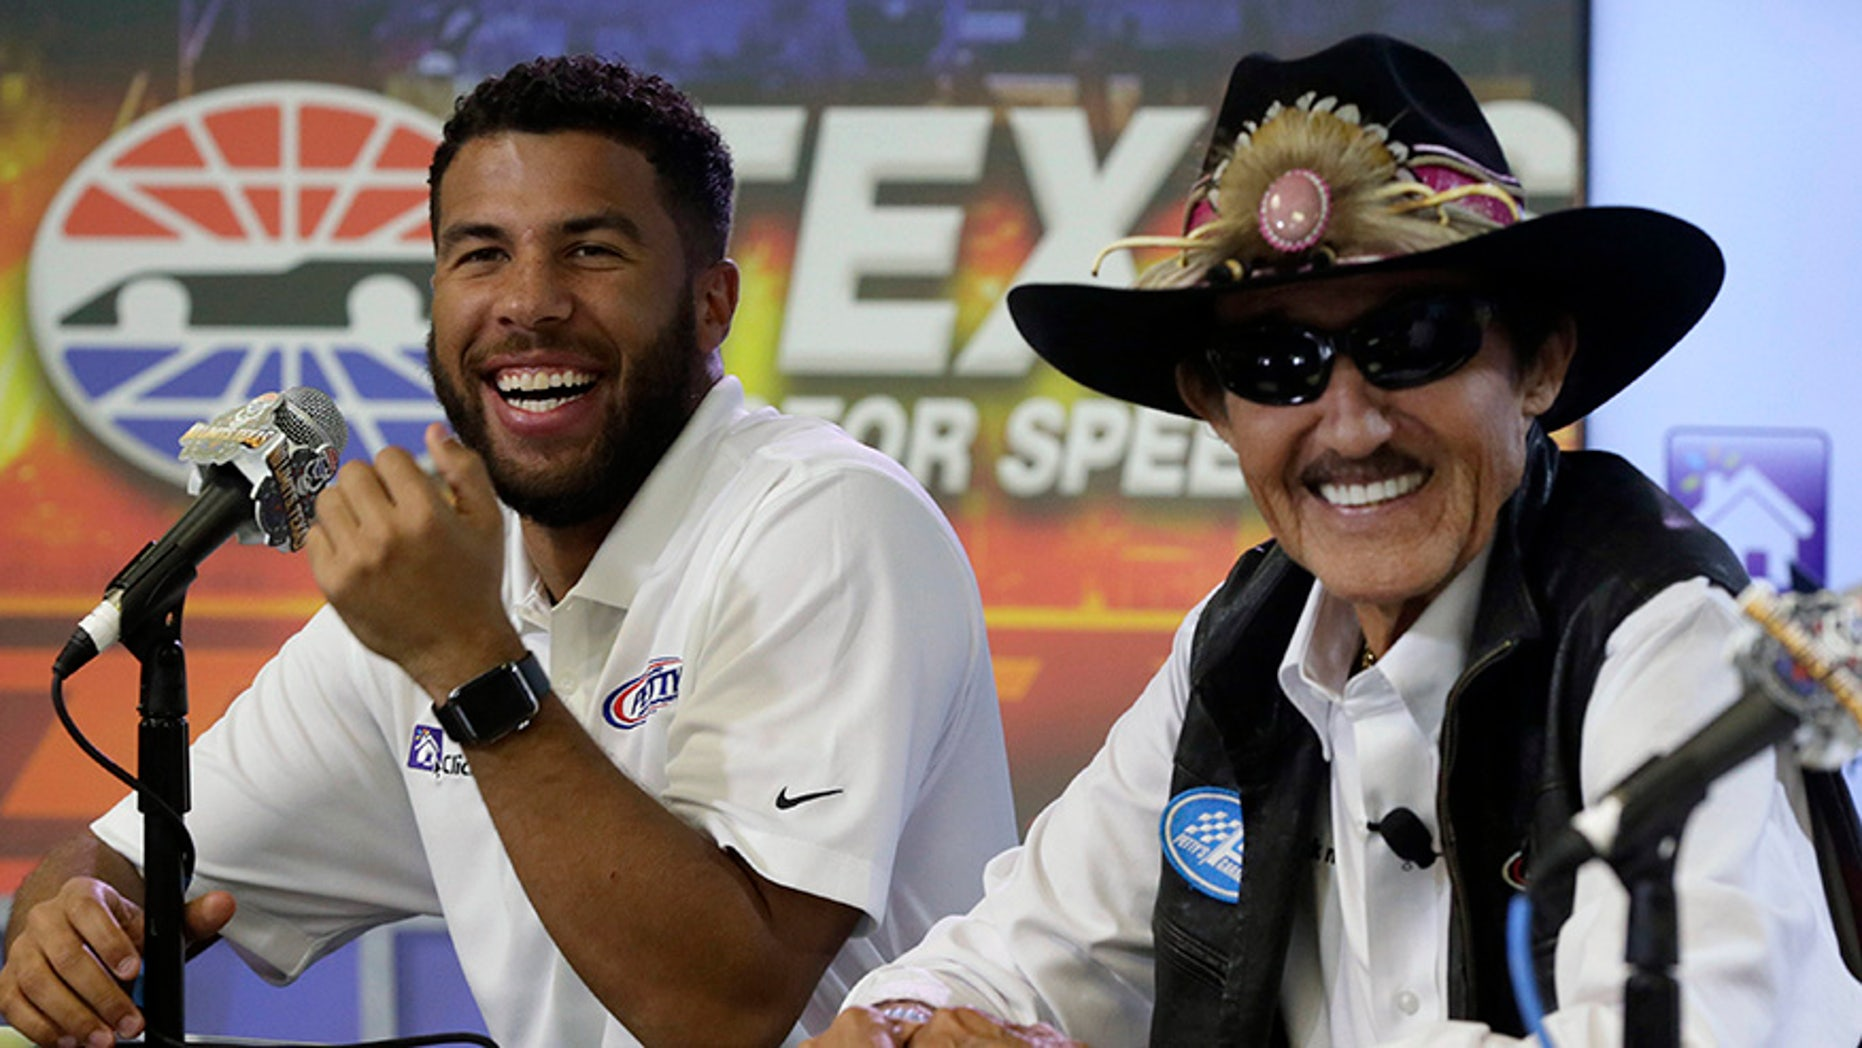 Darrell Wallace Jr., left,  laughs with Richard Petty during news conference before NASCAR Cup series auto race qualifying at Texas Motor Speedway in Fort Worth, Texas, Friday, Nov. 3, 2017. Richard Petty Motorsports announced that Wallace Jr. will drive the No. 43 car for the organization beginning in 2018. (AP Photo/LM Otero)